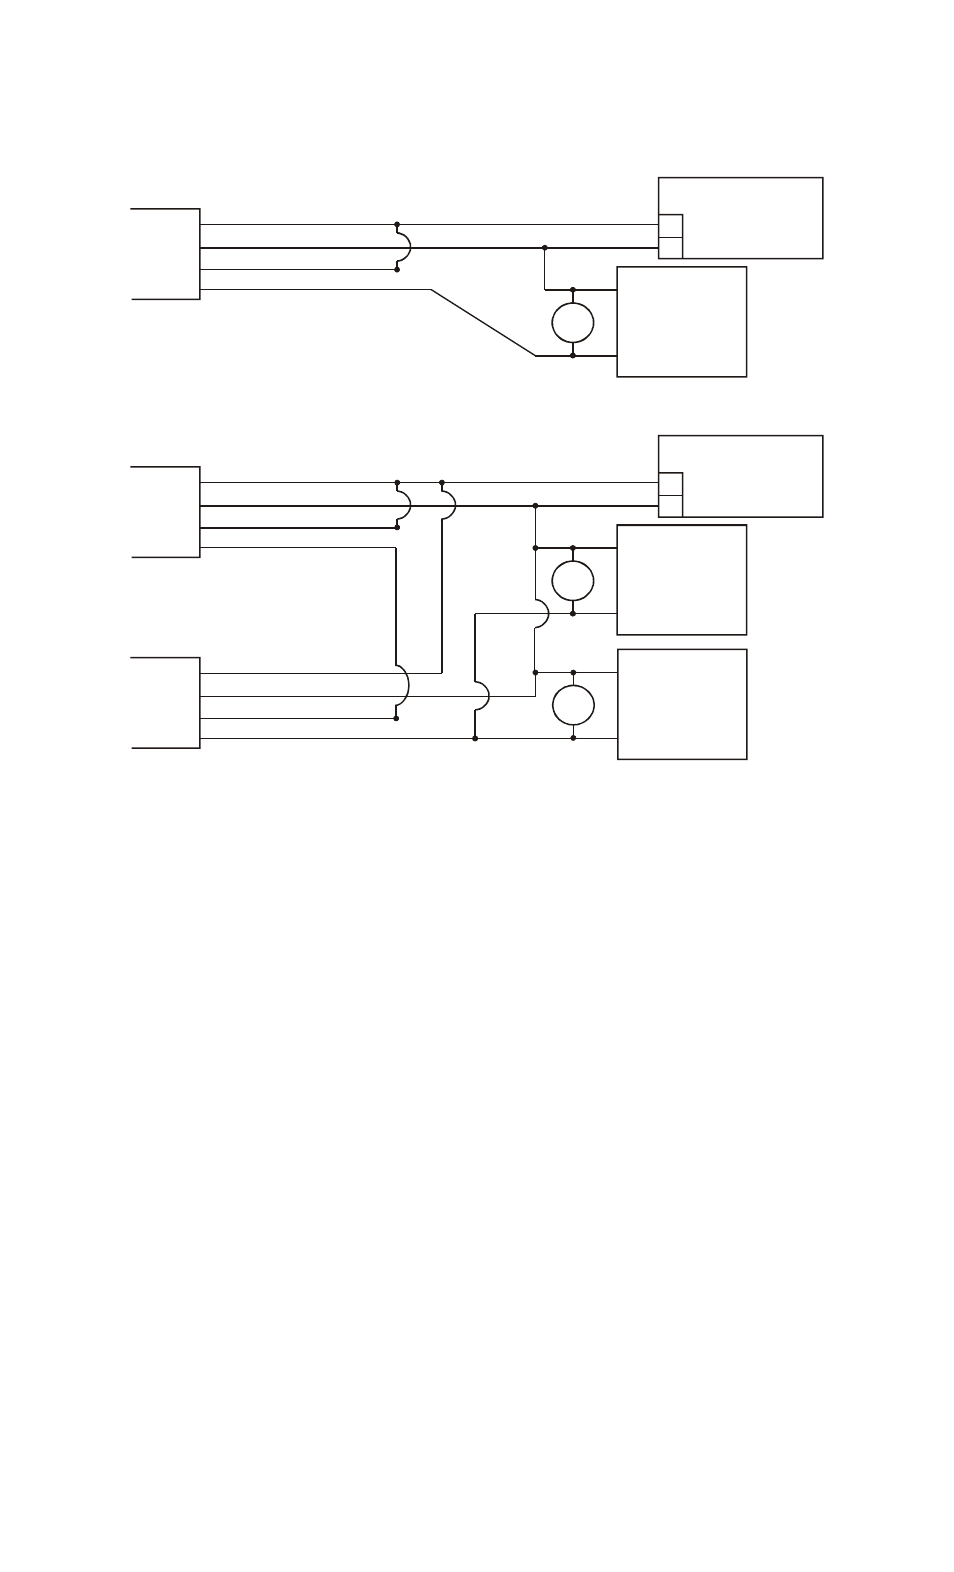 Securitron TSB-3 User Manual | Page 5 / 11 on friendship bracelet diagrams, honda motorcycle repair diagrams, electrical diagrams, led circuit diagrams, motor diagrams, smart car diagrams, pinout diagrams, sincgars radio configurations diagrams, transformer diagrams, lighting diagrams, engine diagrams, internet of things diagrams, series and parallel circuits diagrams, battery diagrams, switch diagrams, hvac diagrams, gmc fuse box diagrams, troubleshooting diagrams, electronic circuit diagrams,